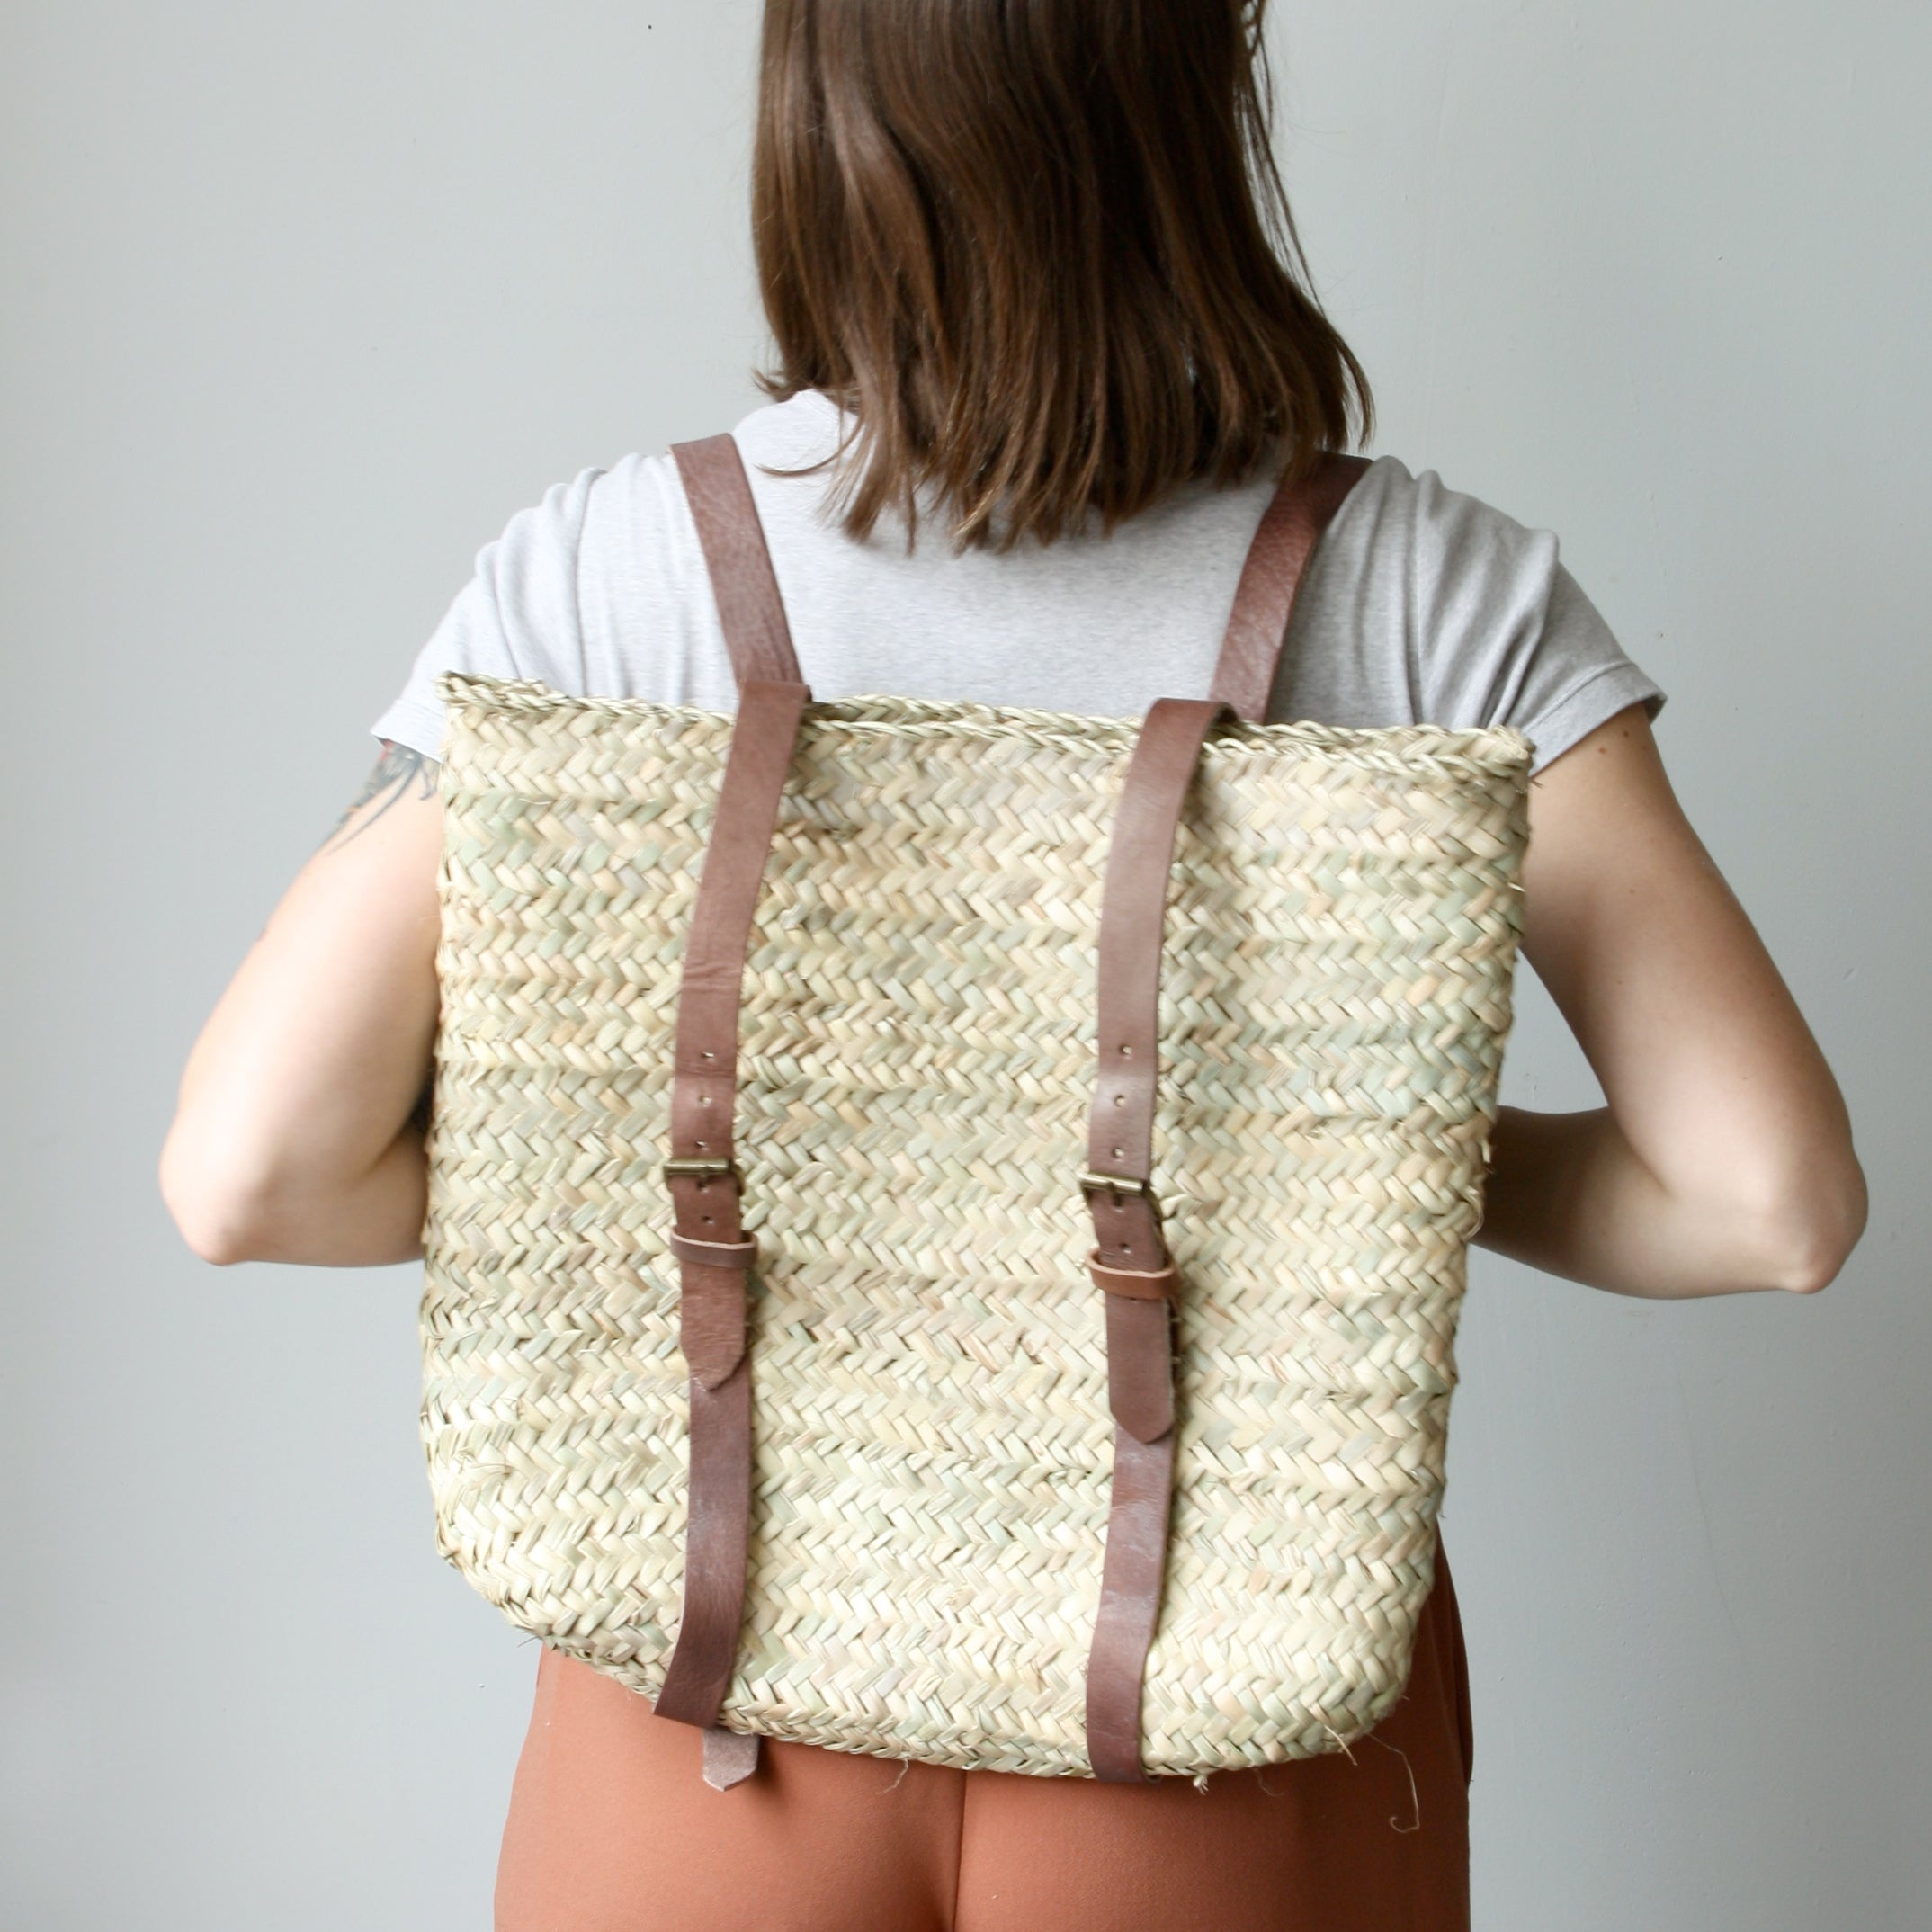 Woven Market Backpack